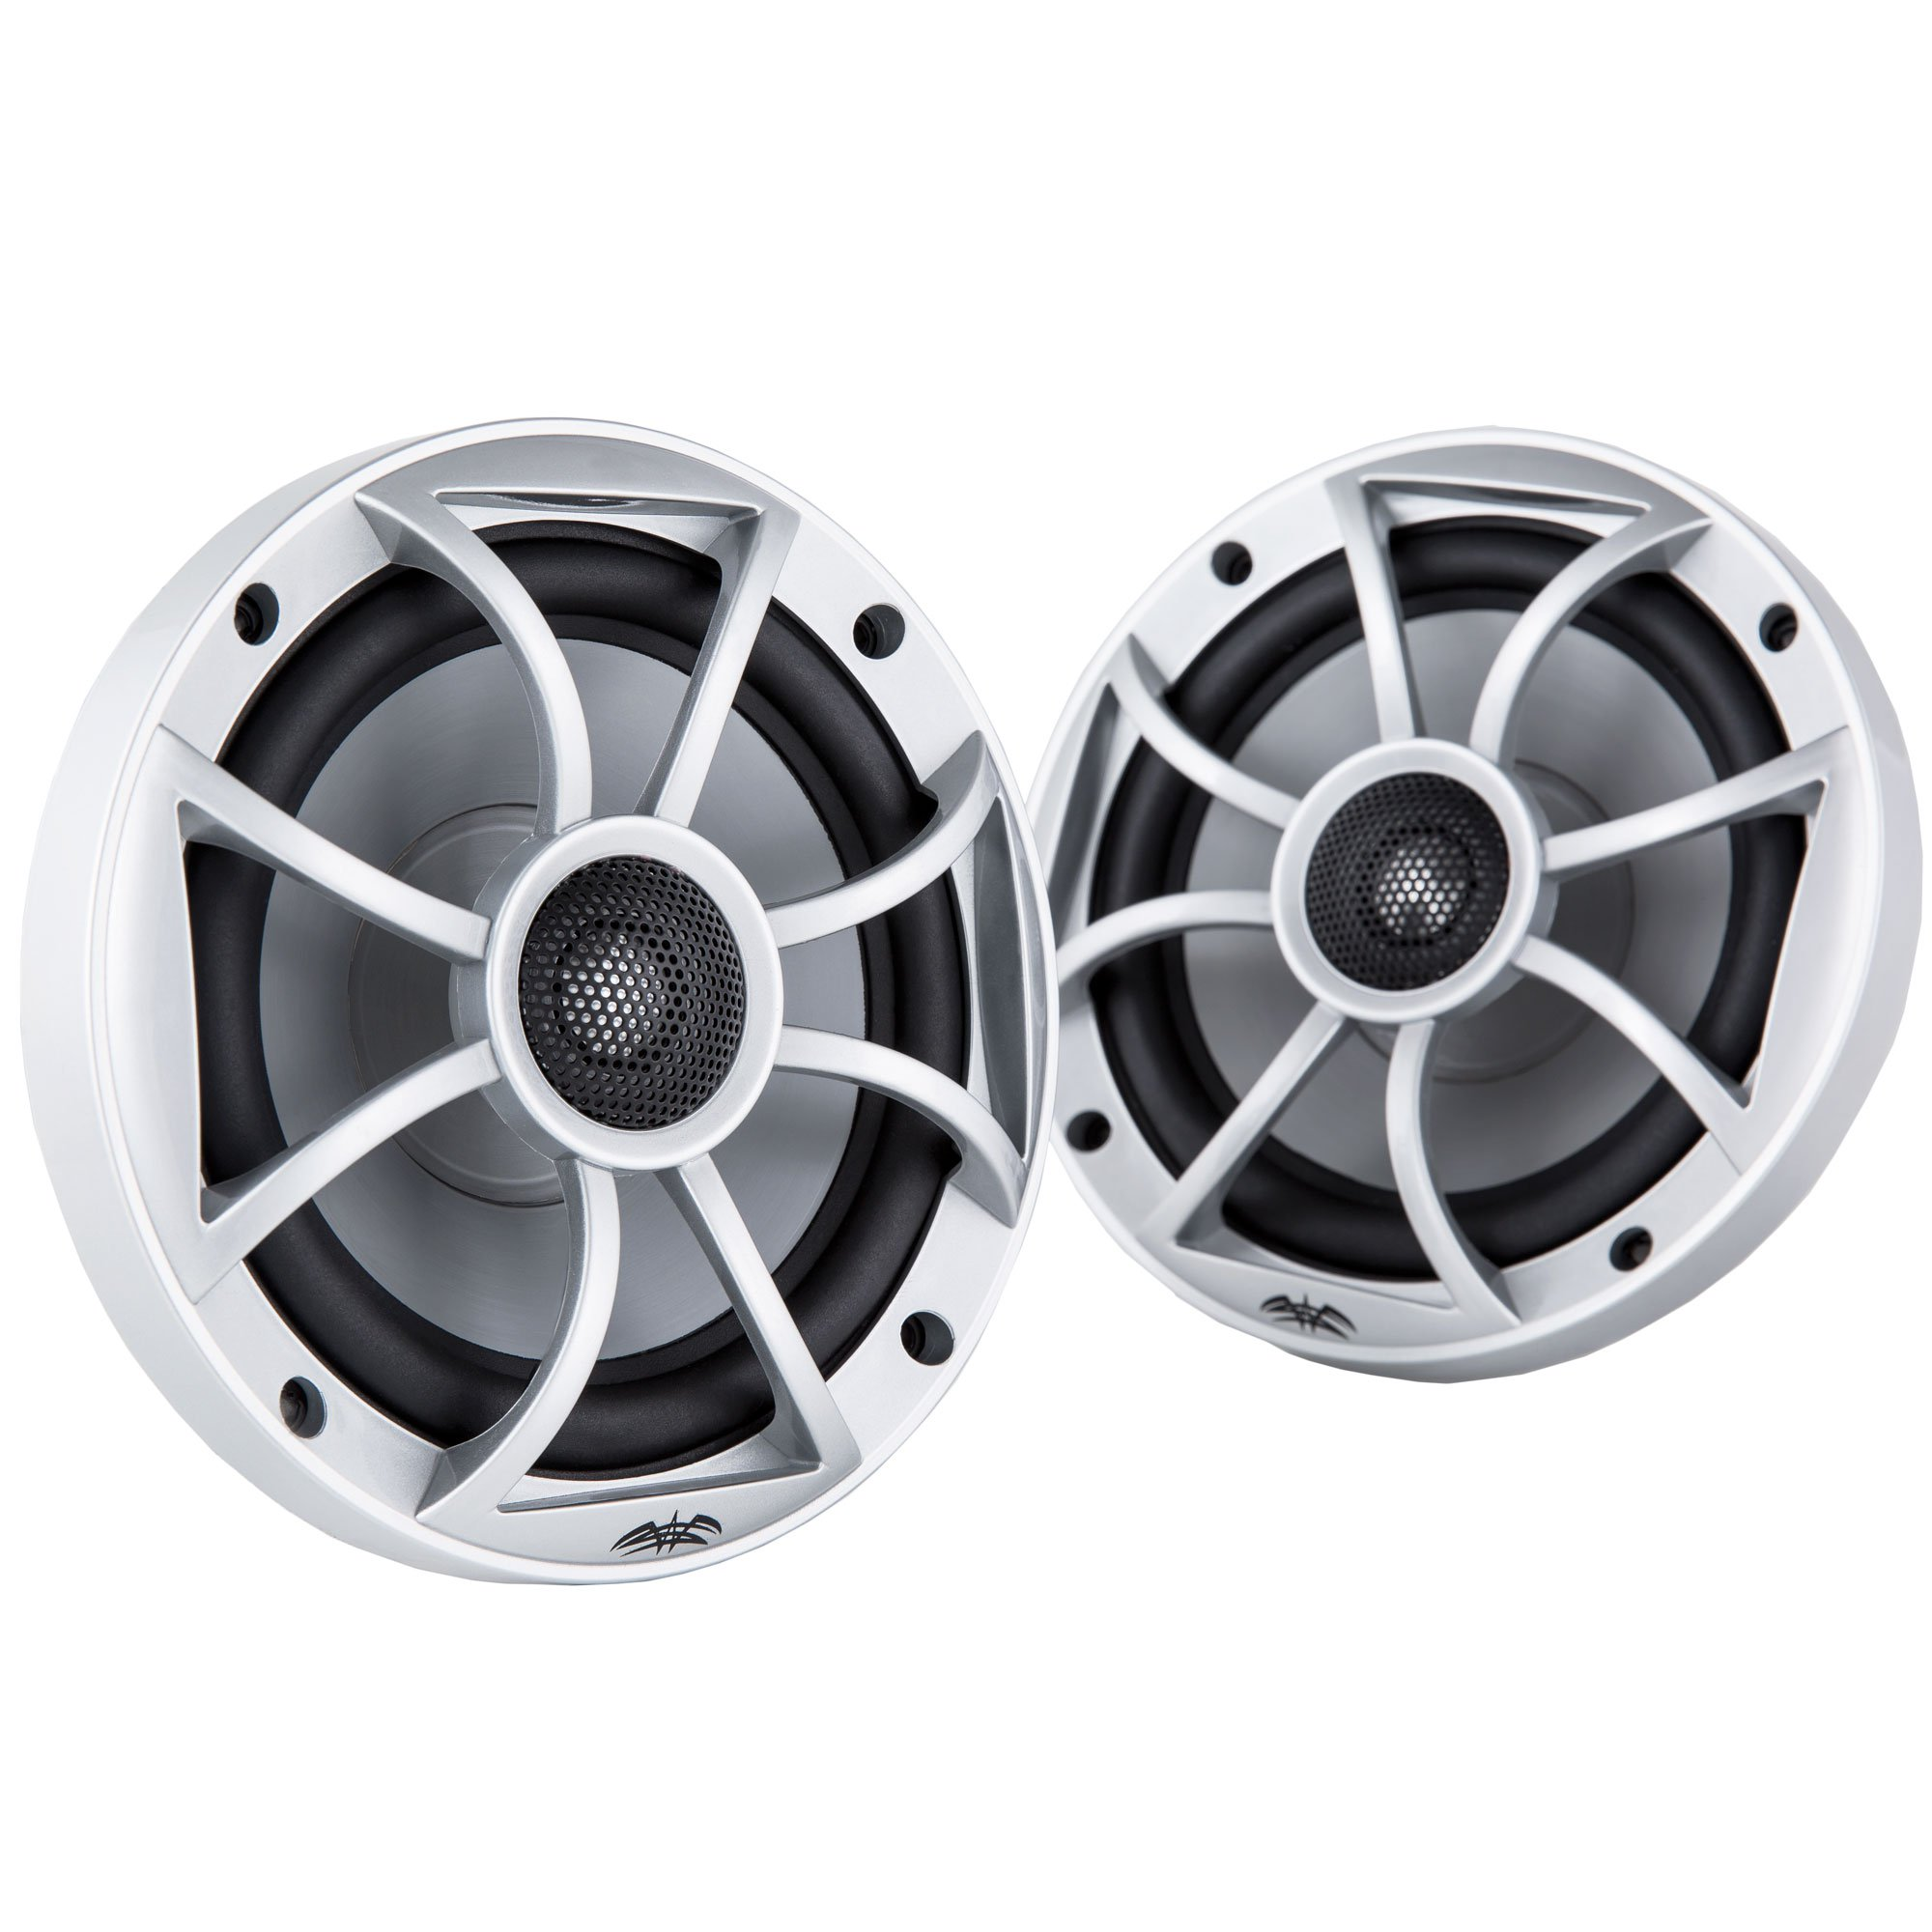 Wet Sounds 6.5 Inch 120W Component Coaxial Speakers, Silver Grille | XS-65i-S